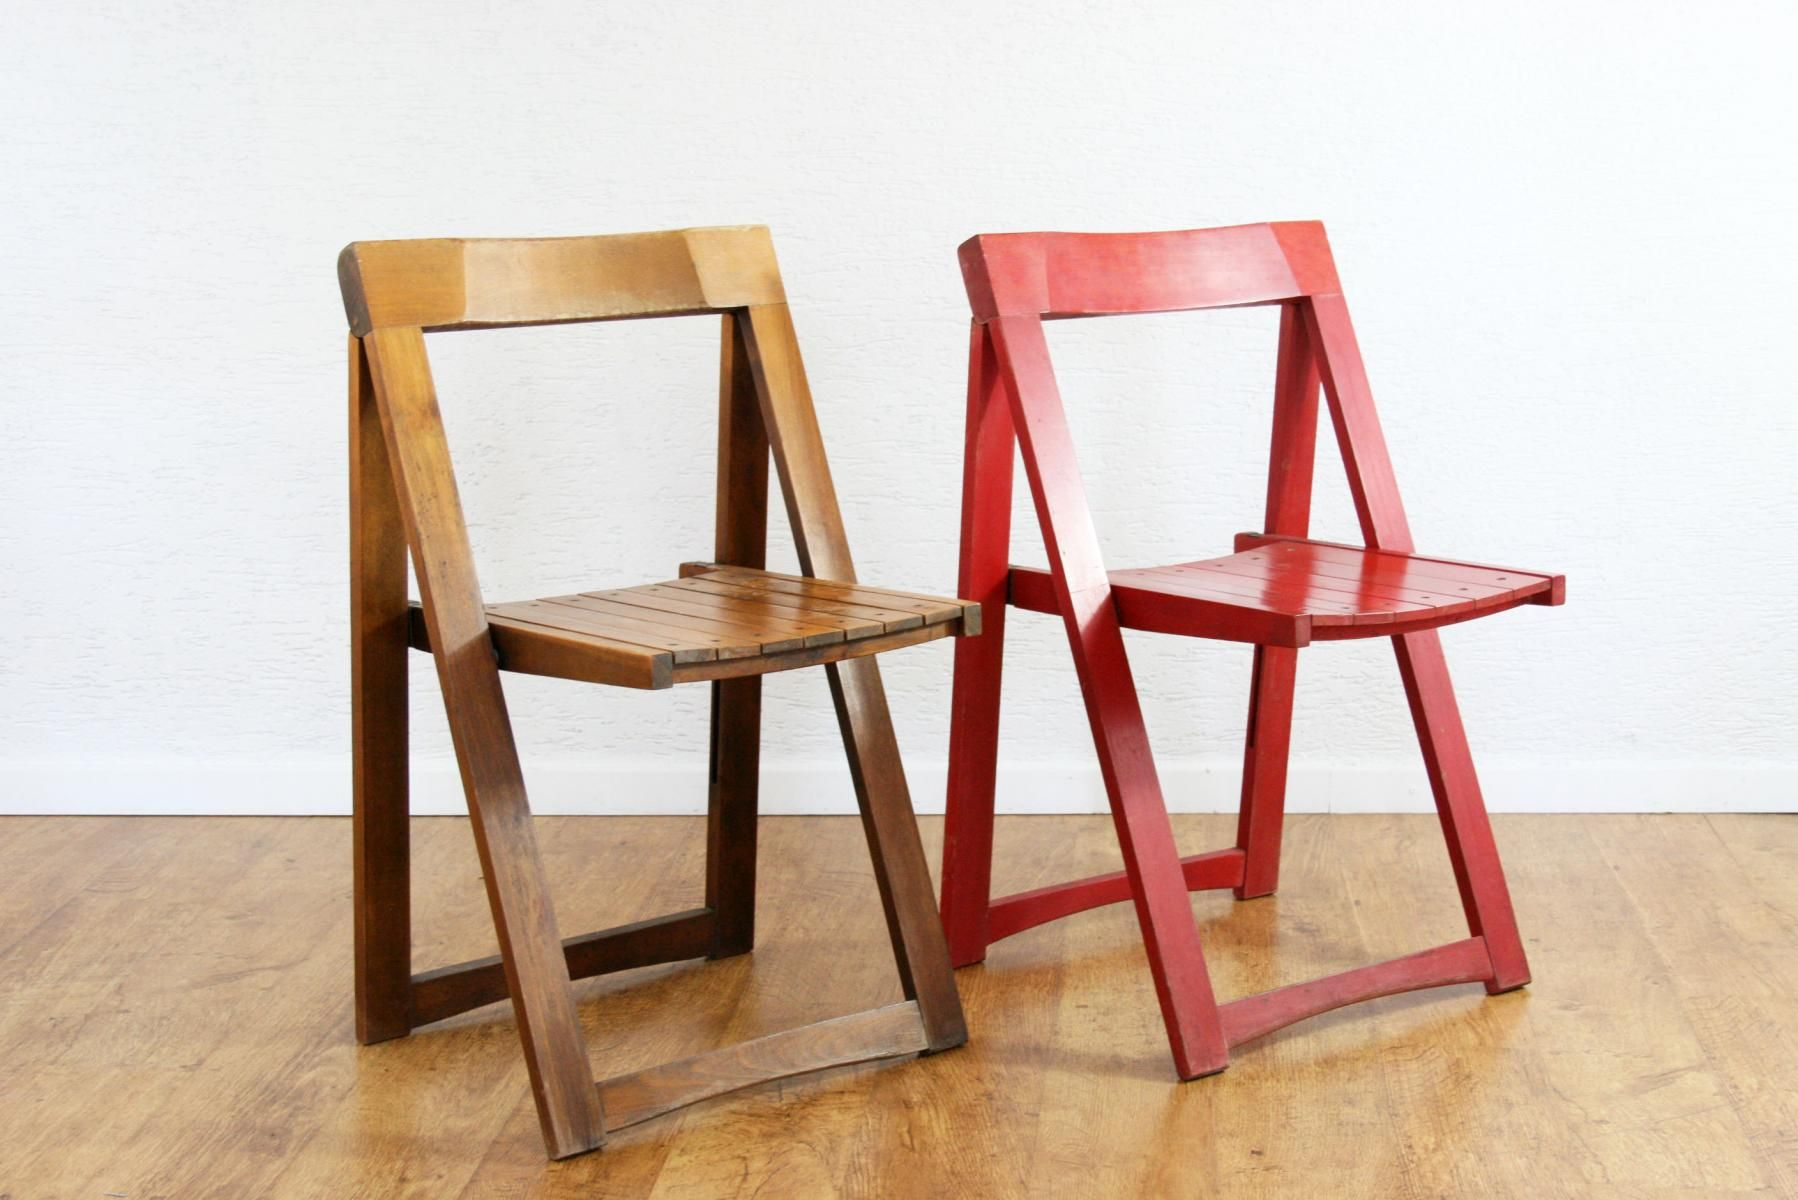 Mid Century Cream and Red Folding Chairs by Aldo Jacober for